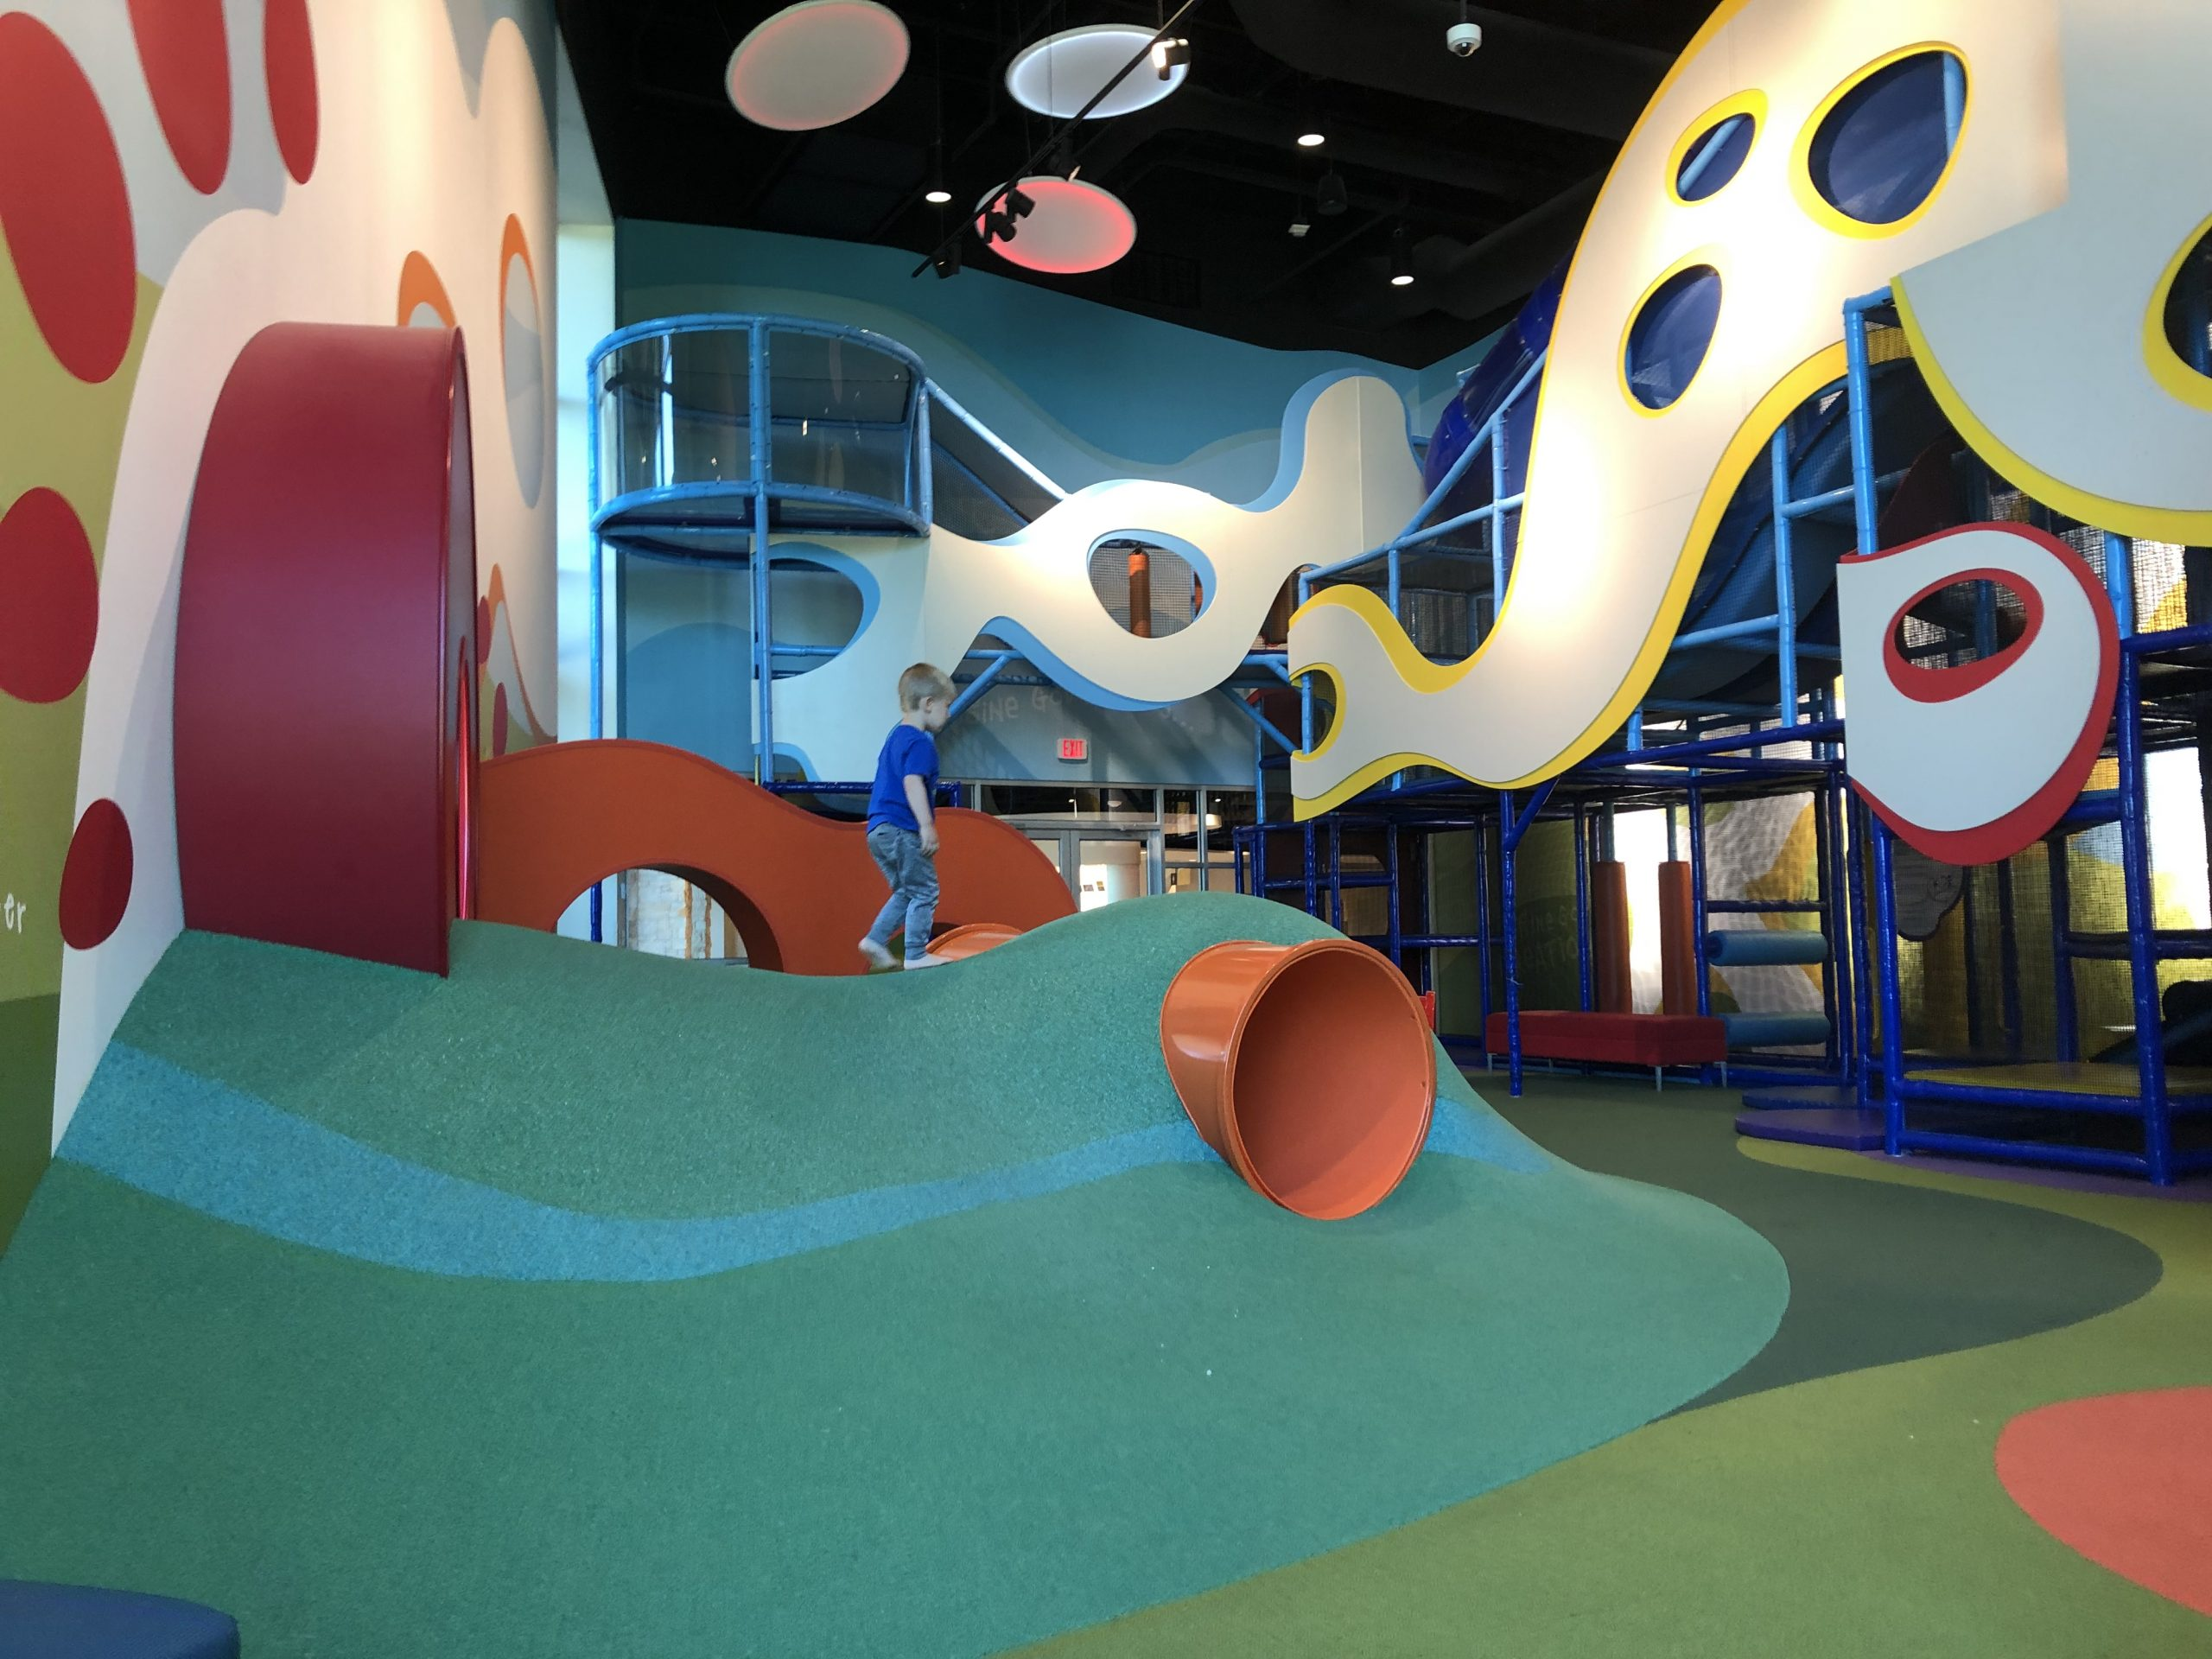 Prestonwood Kidzone indoor play area